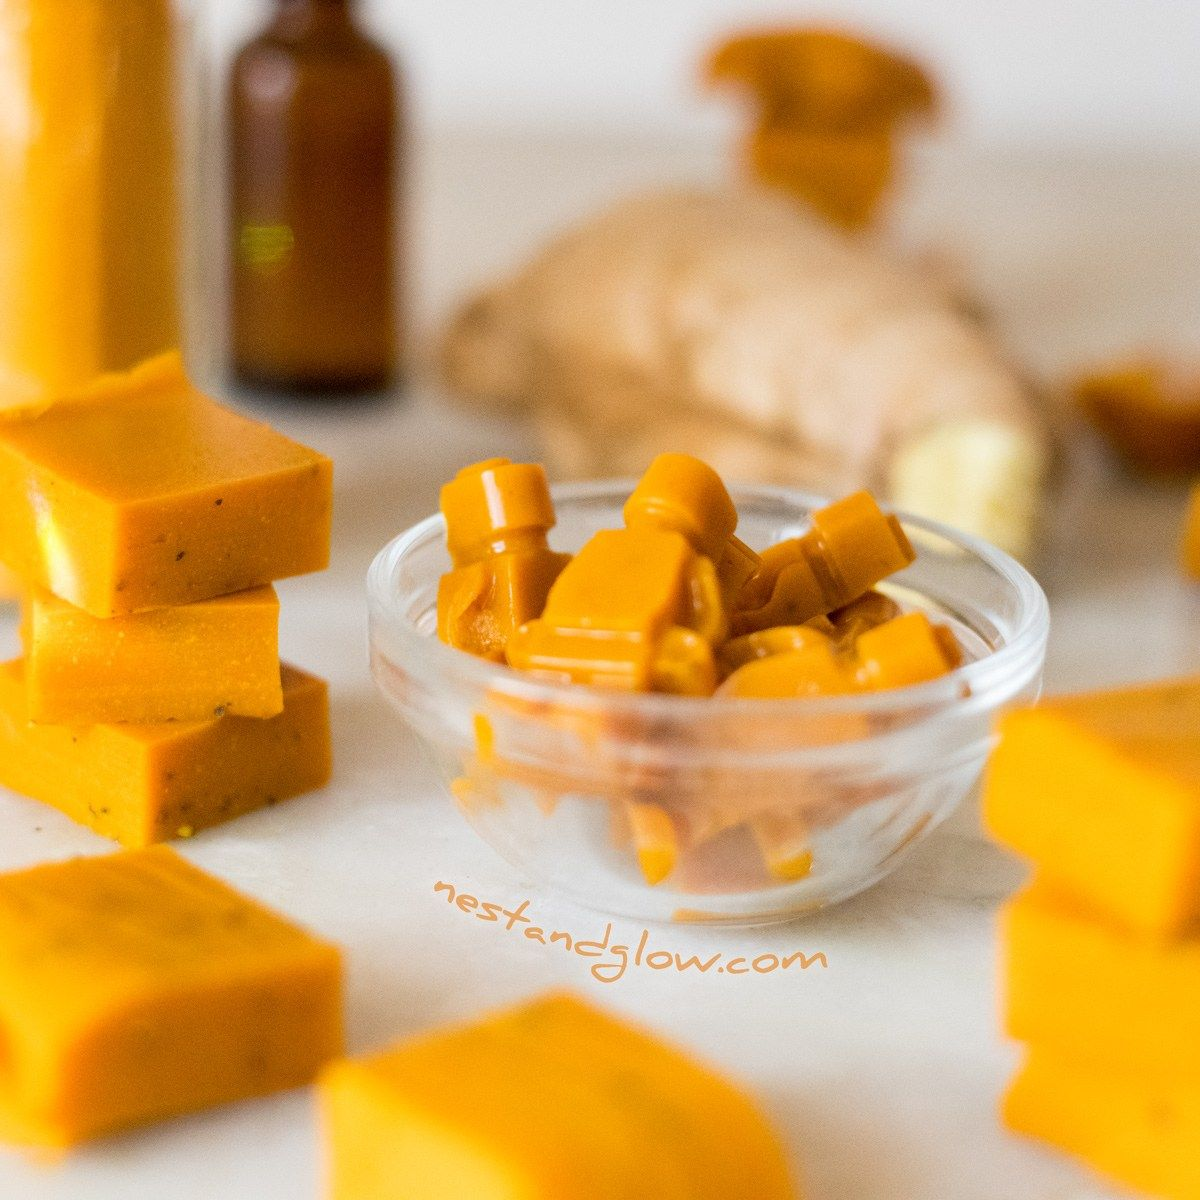 CBD Infused Sweets with Turmeric and Ginger